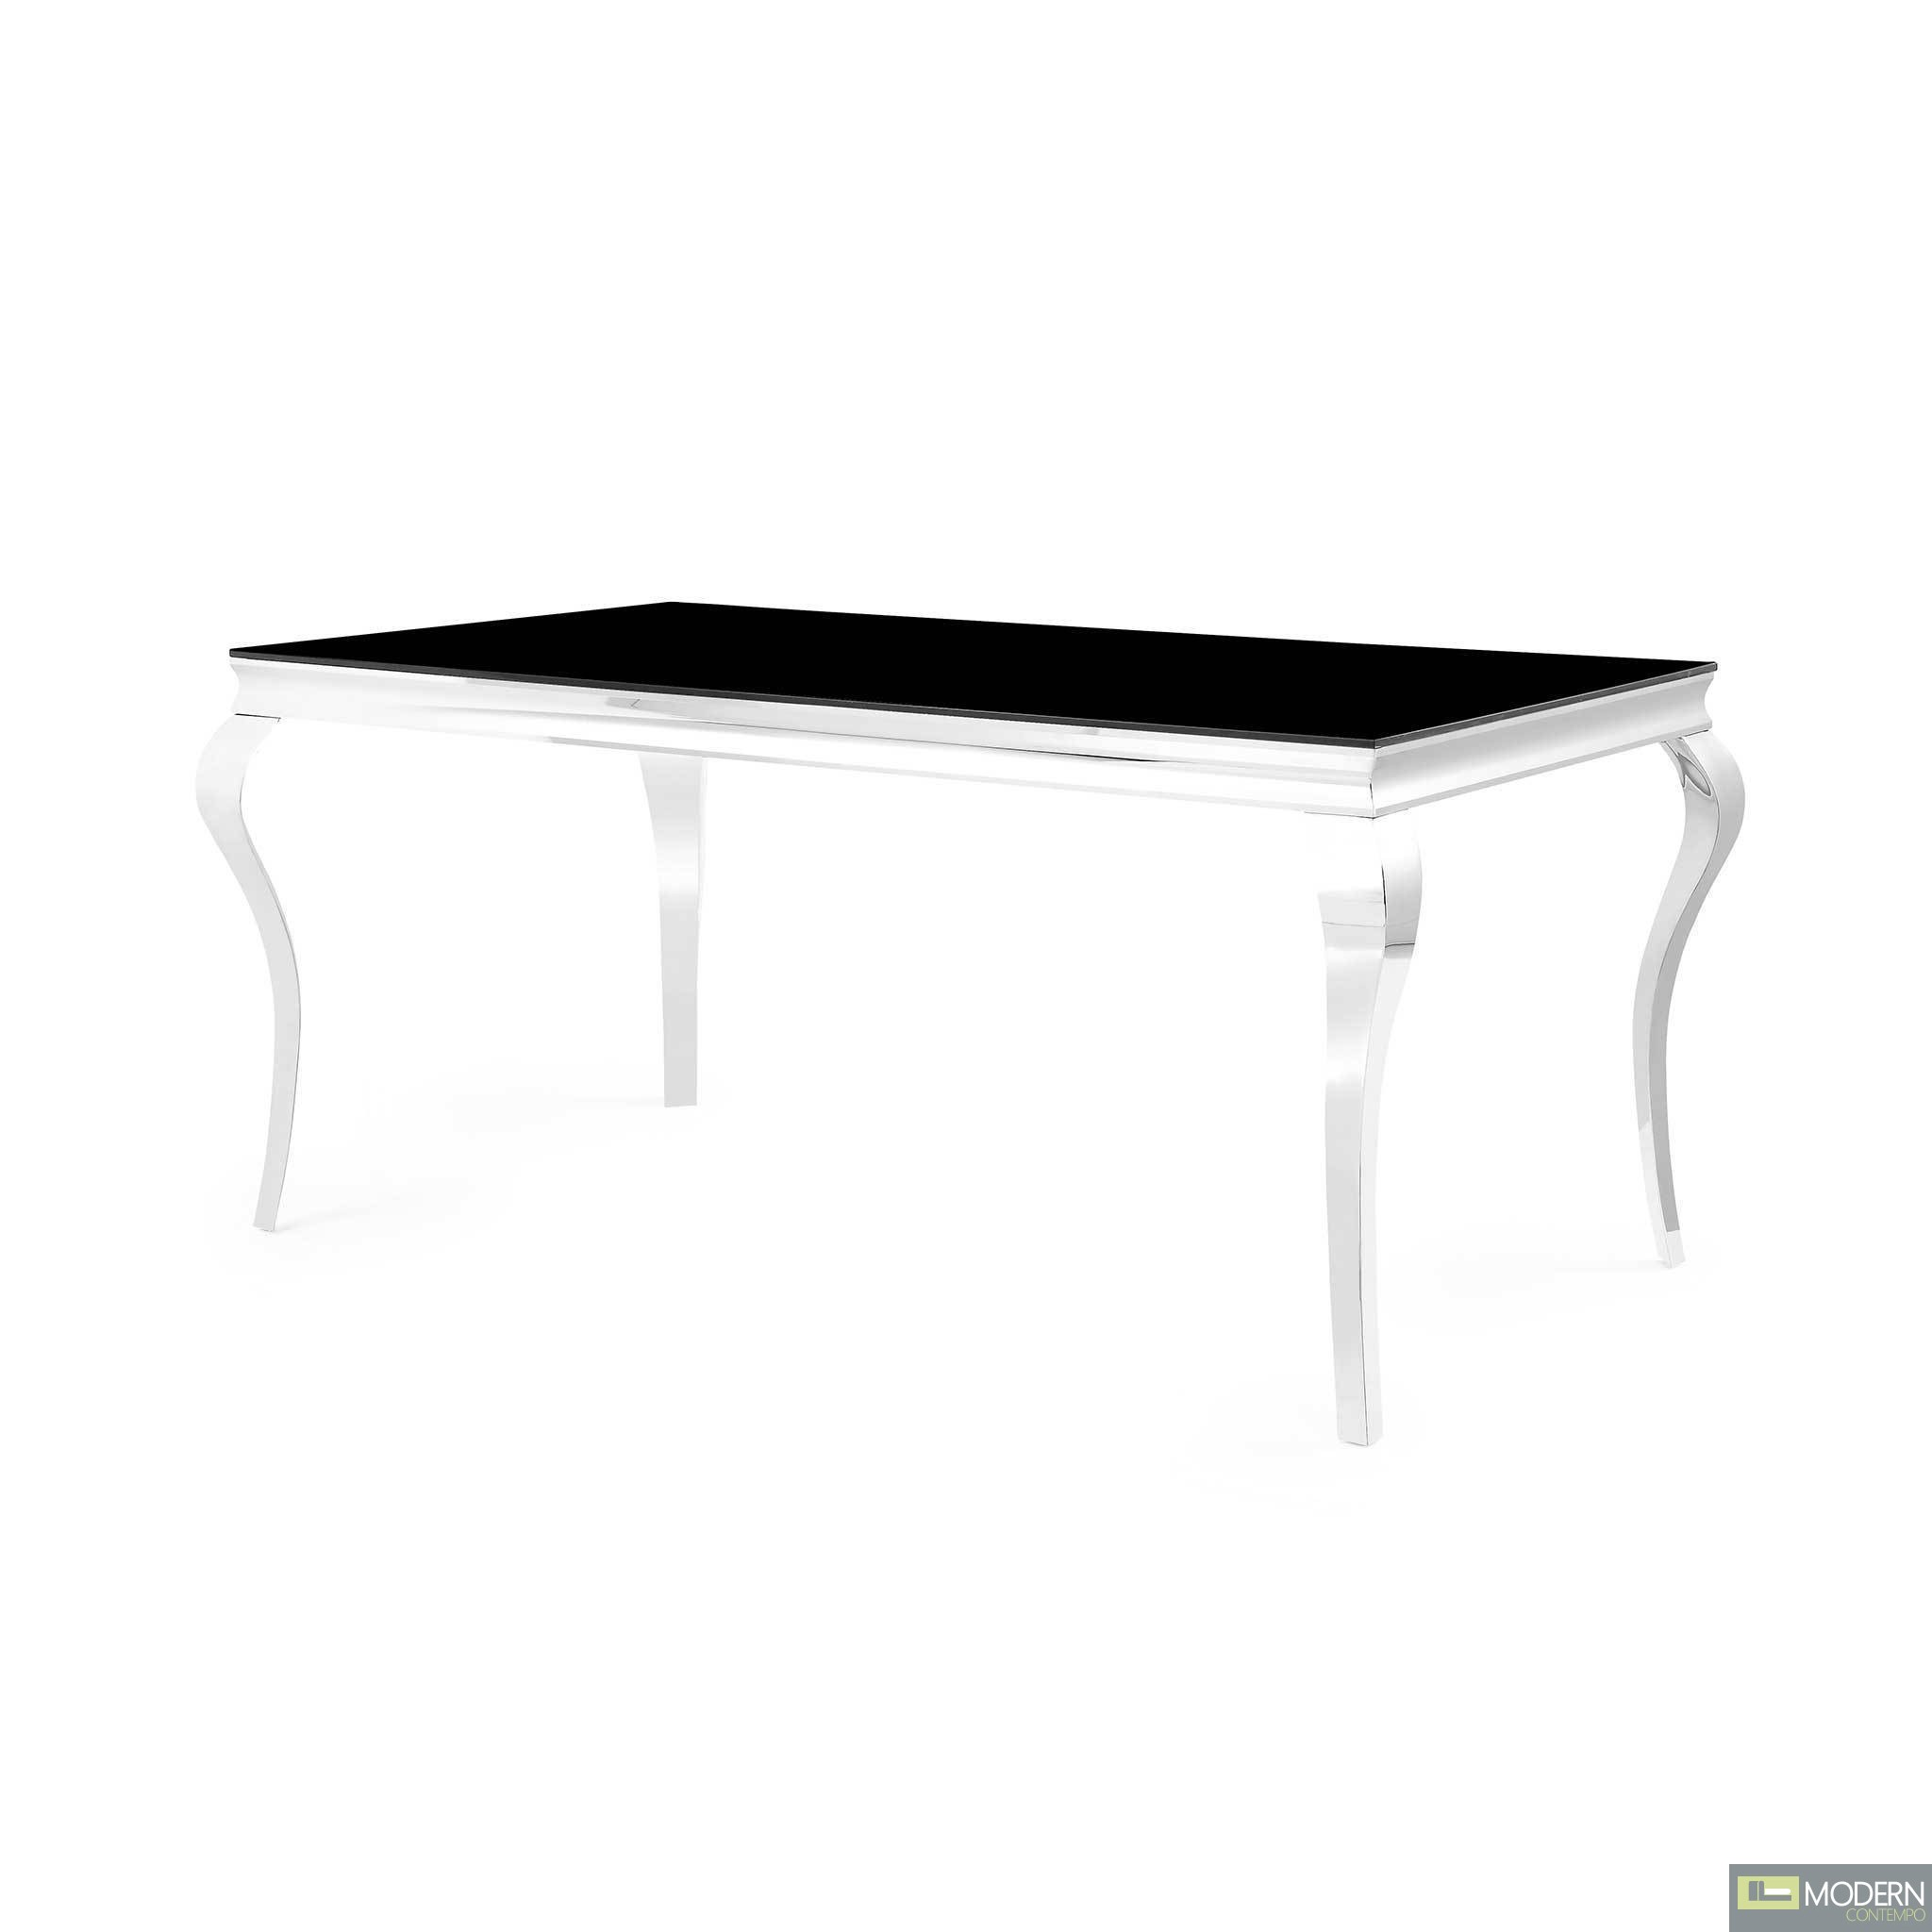 Neoclassical Dining Table with Black Glass Top and Polished Stainless Steel Base